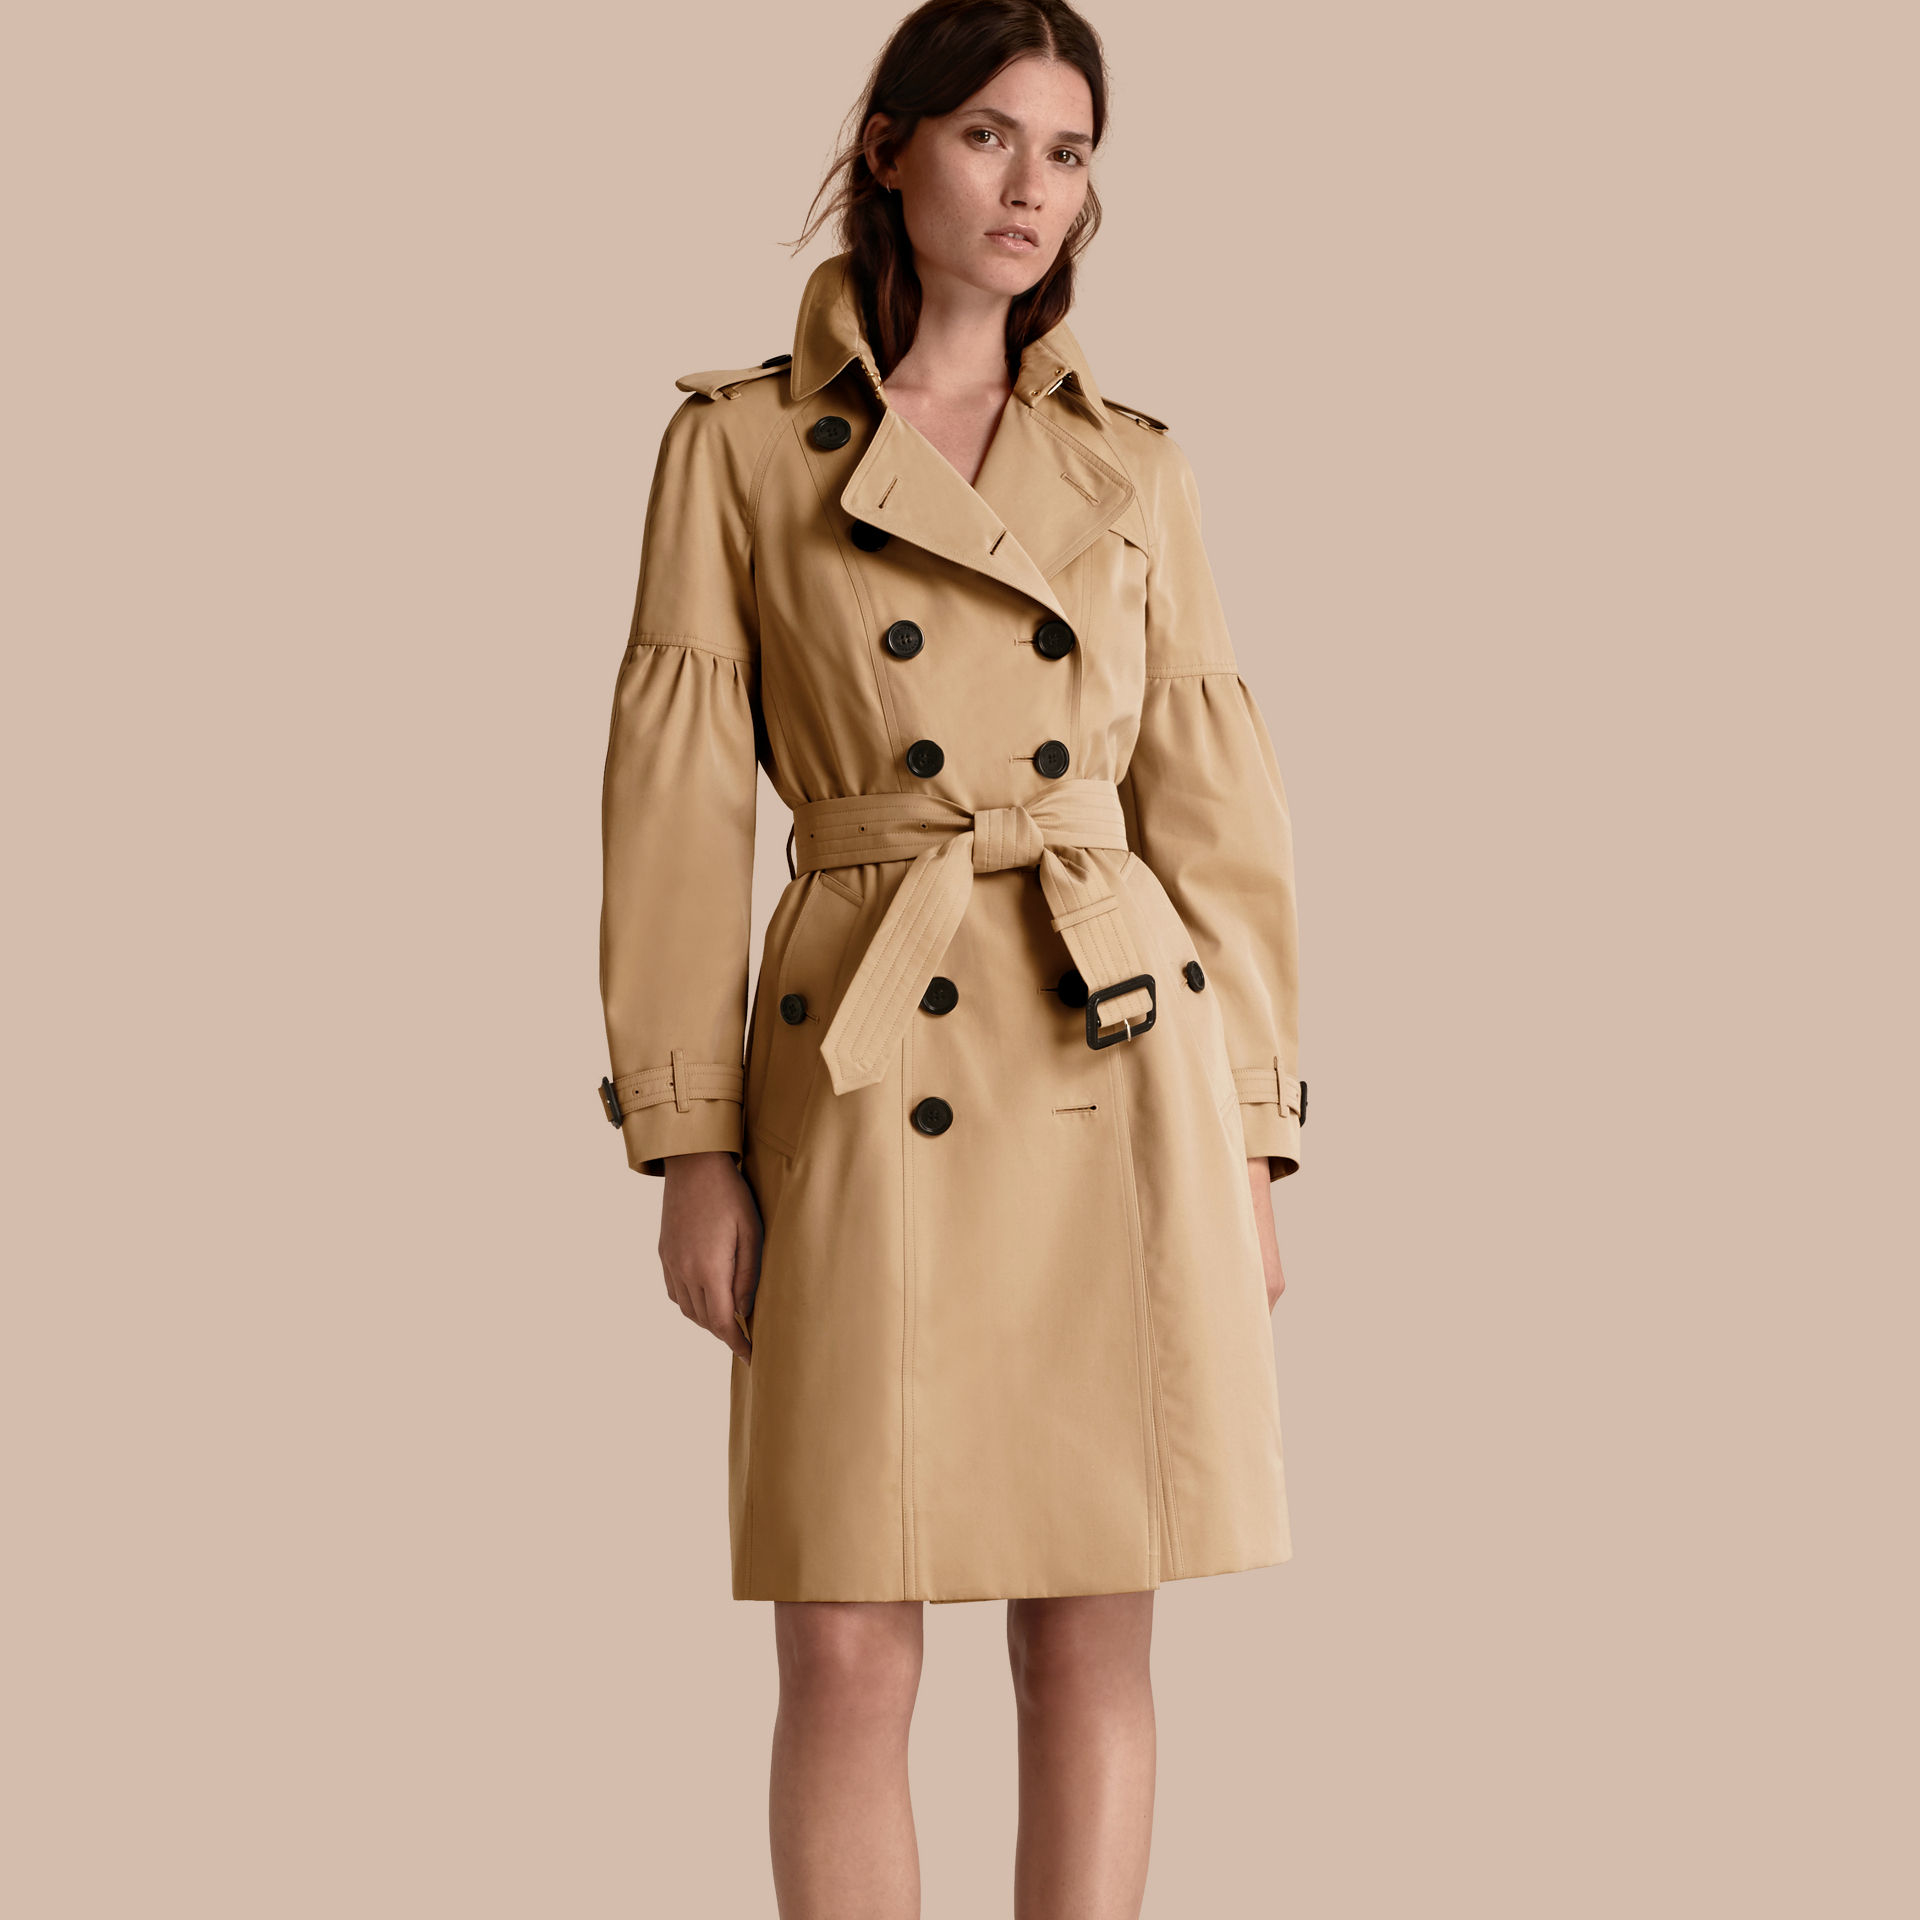 burberry cotton gabardine trench coat with puff sleeves in blue lyst. Black Bedroom Furniture Sets. Home Design Ideas